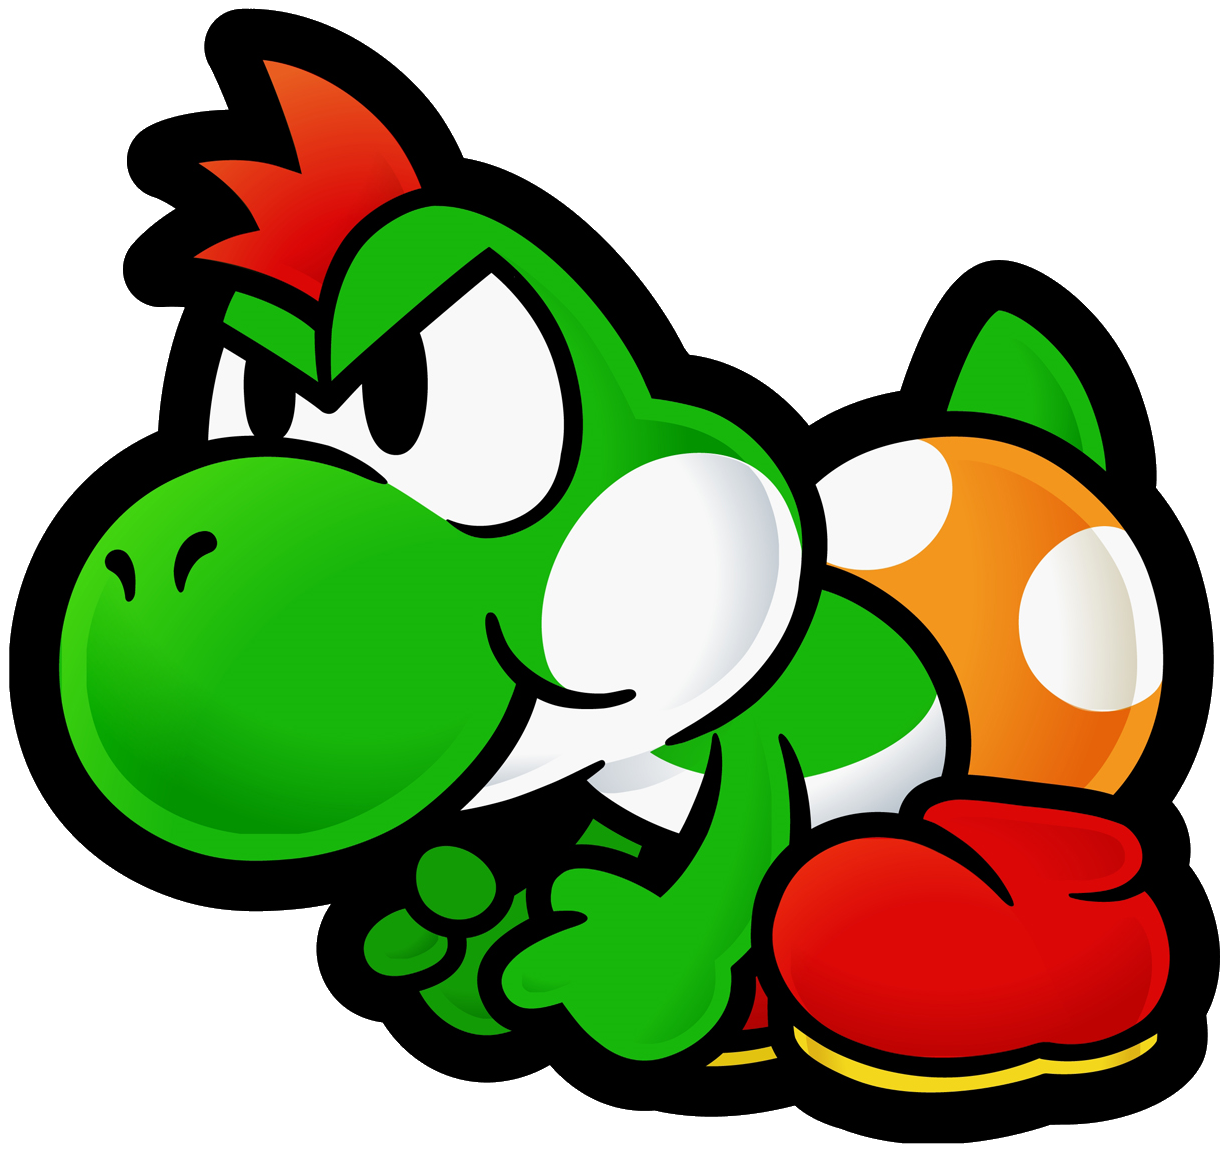 Paper mario coloring pages to print - Paper Mario Coloring Pages To Print 81